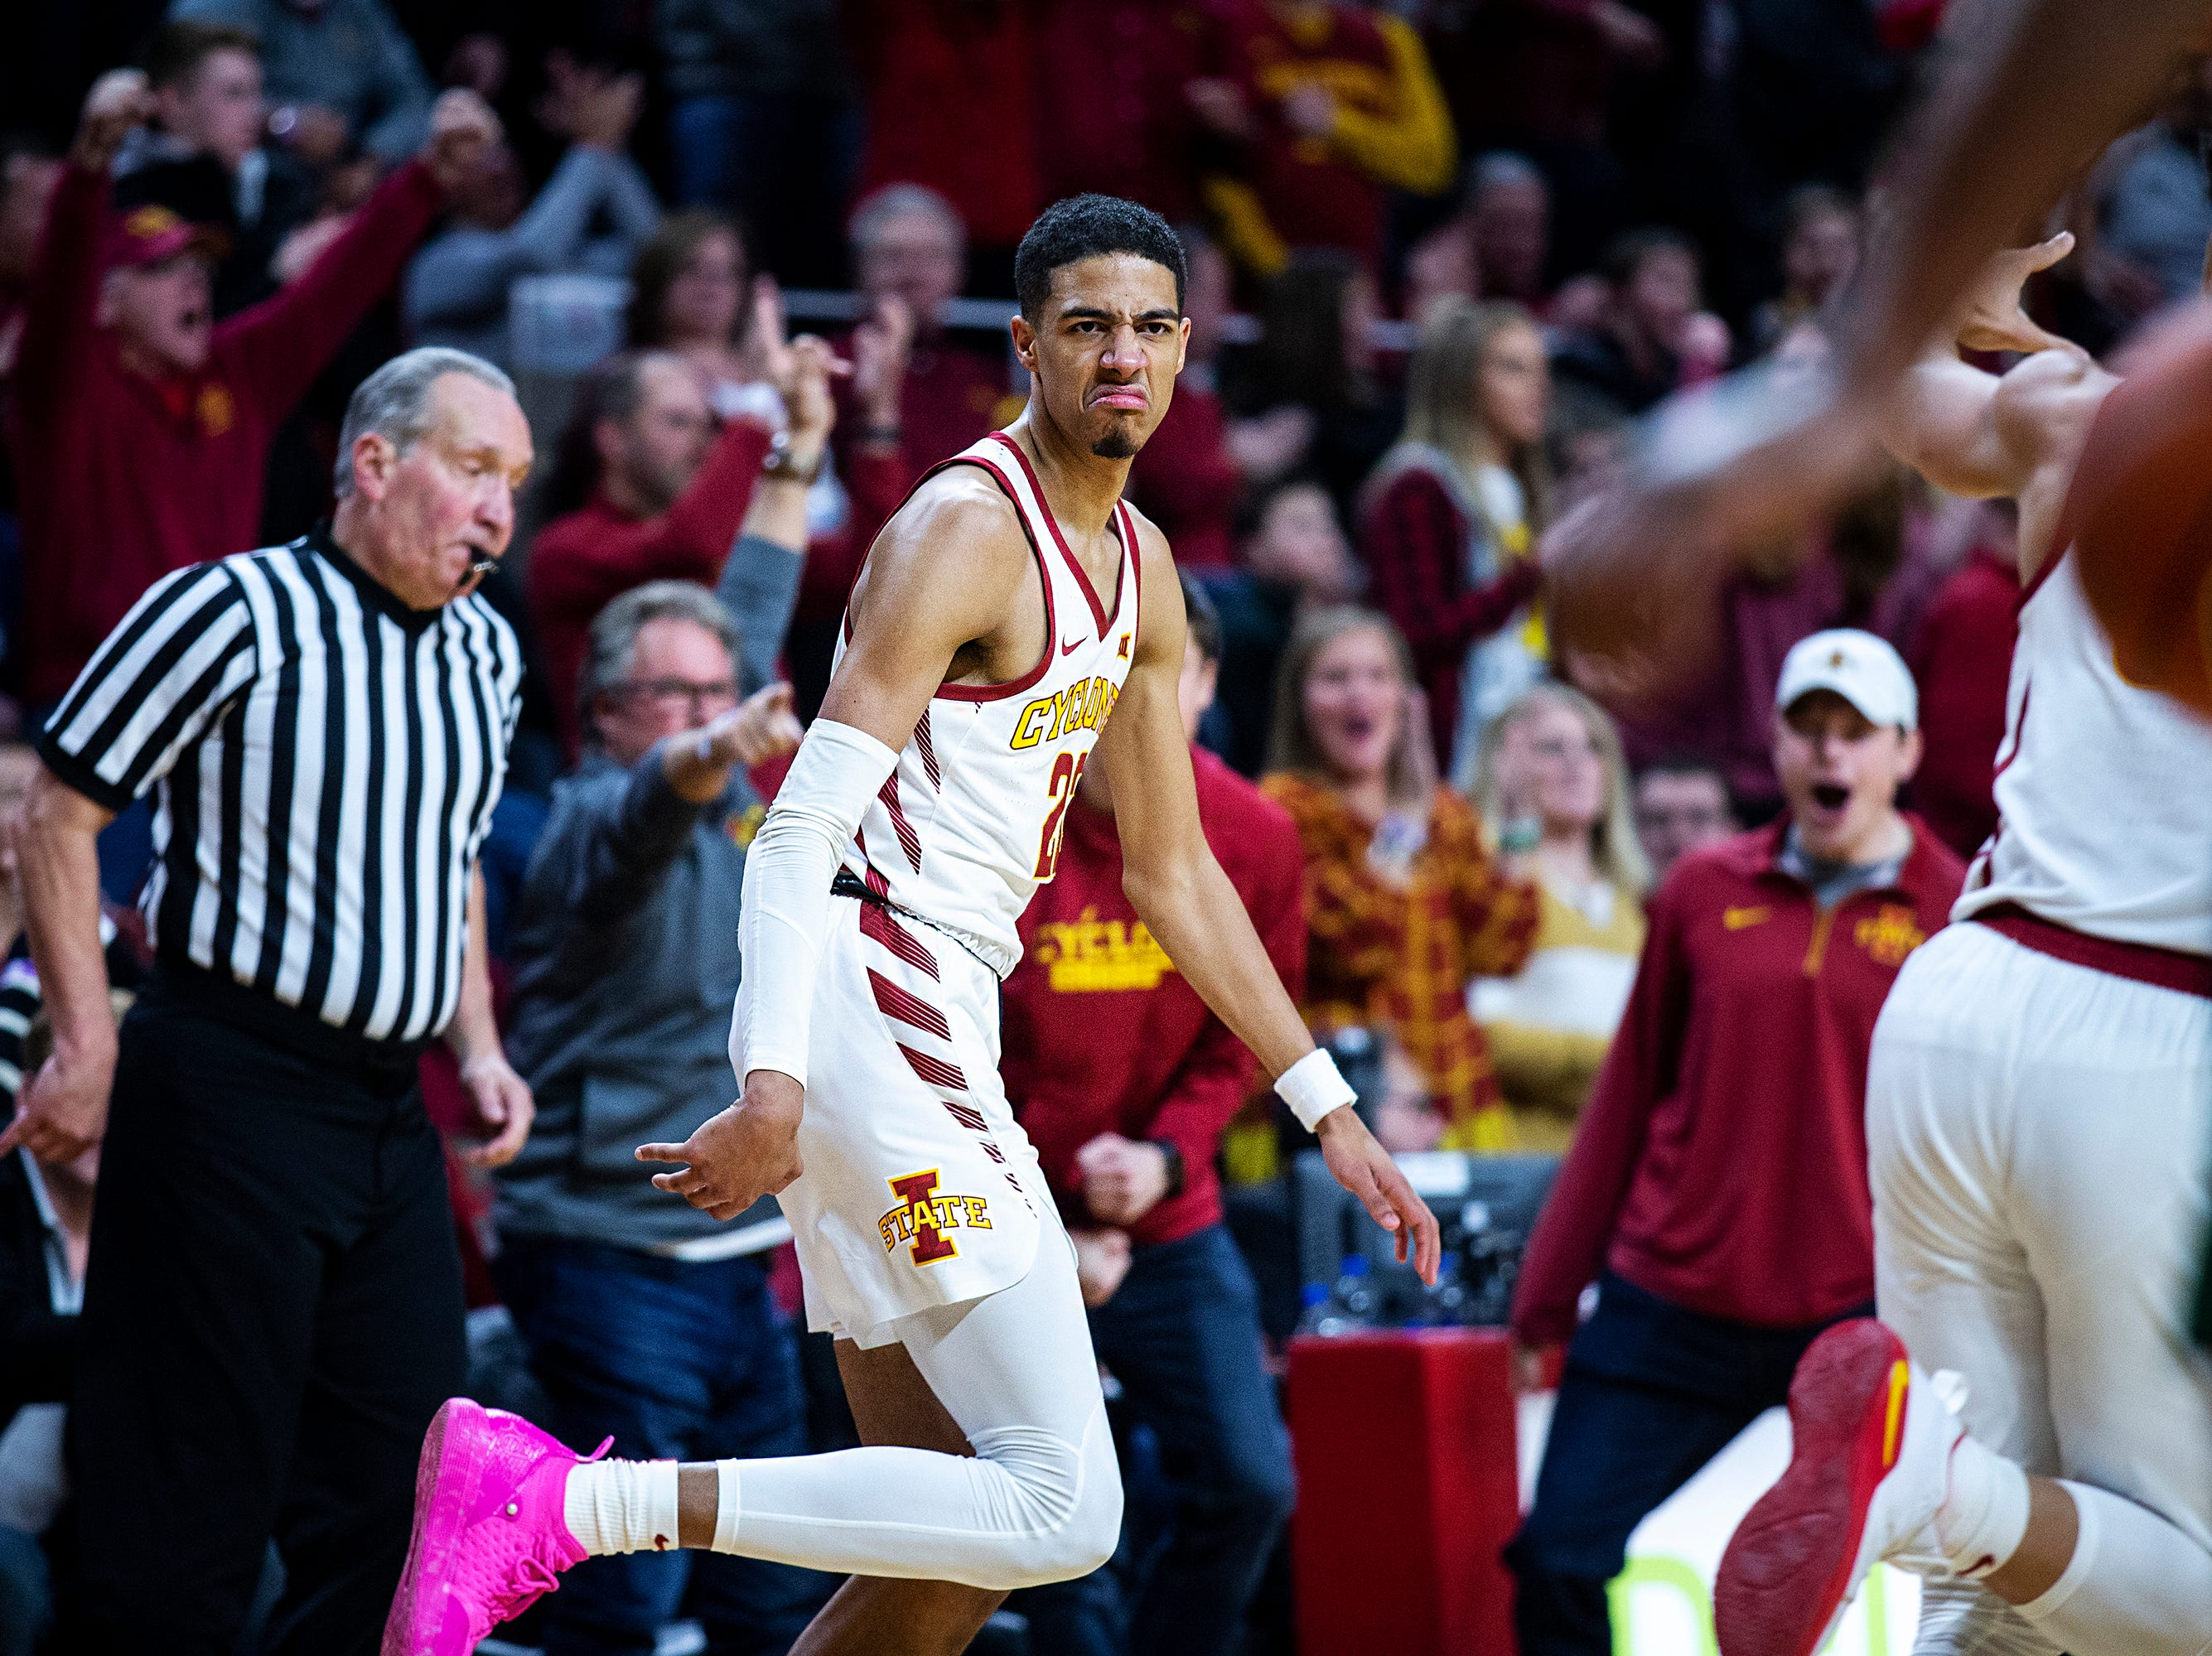 Iowa State's Tyrese Haliburton scrunches his face after making a three-point shot during the Iowa State men's basketball game against Baylor on Tuesday, Feb. 19, 2019, in Hilton Coliseum. The Cyclones fell to the Bears 69-73.